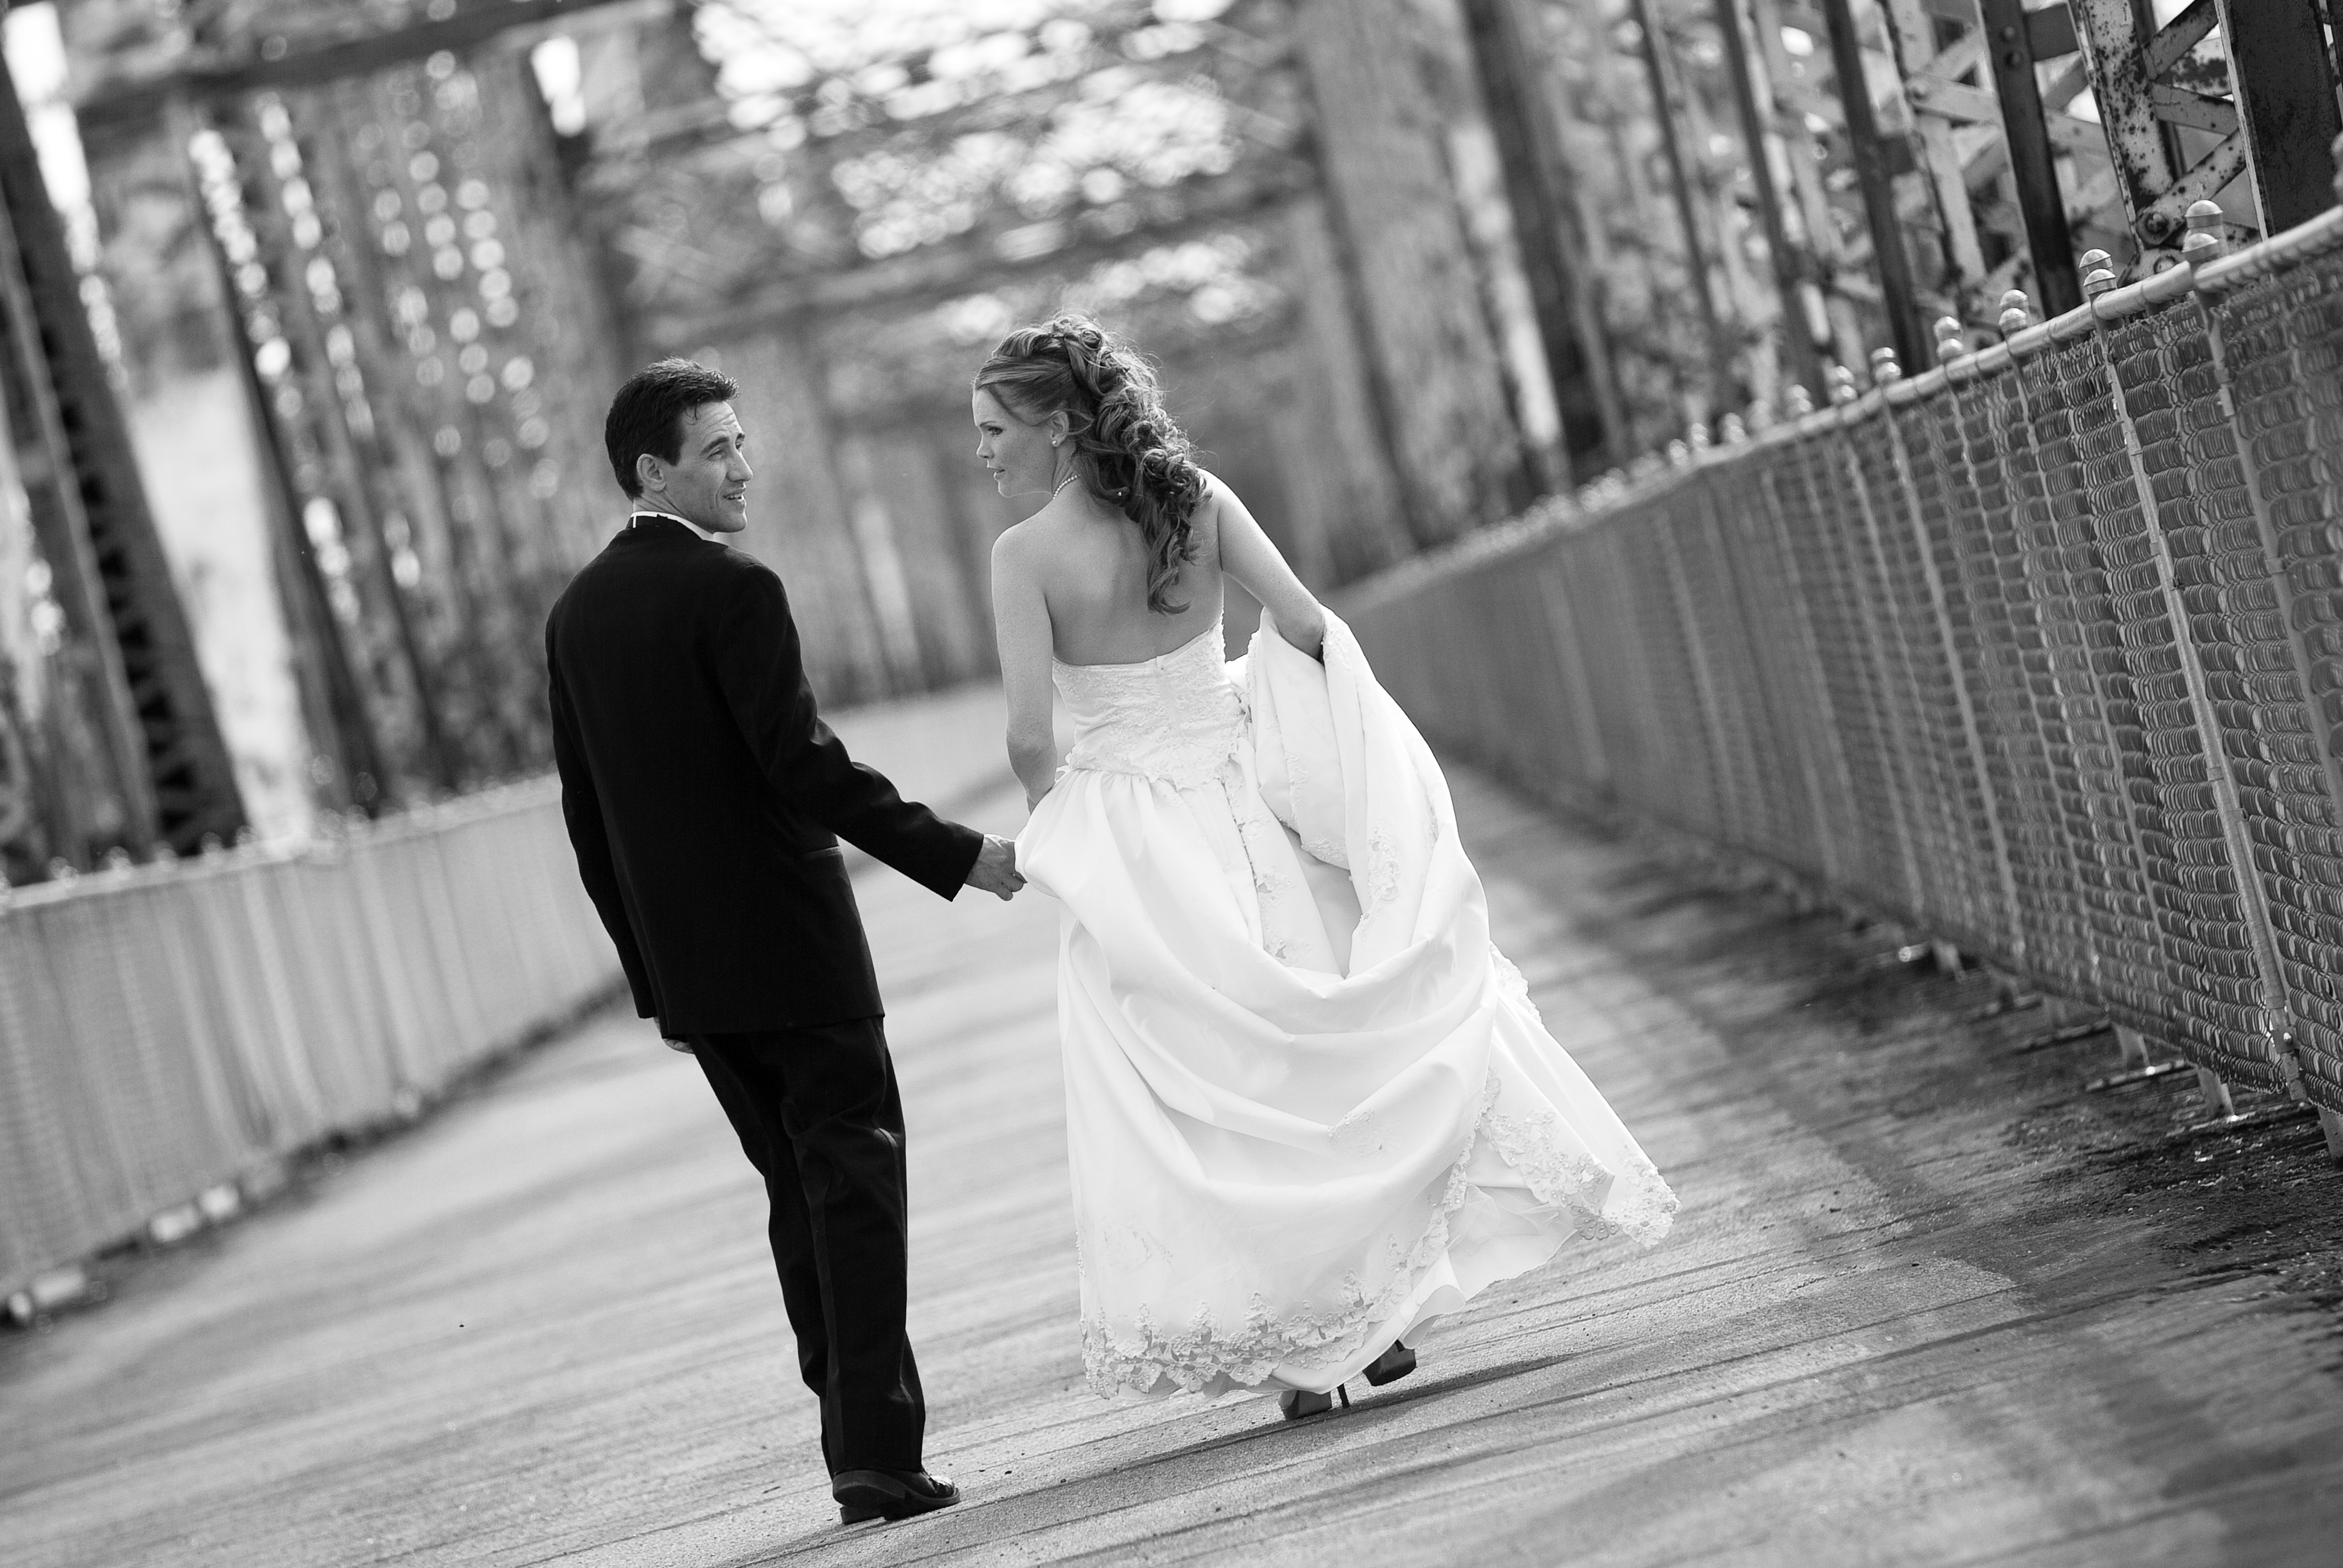 Brian zinchuk publishing professional photography page 20 the winner of the free wedding promo will receive a full day photo shoot album junglespirit Images